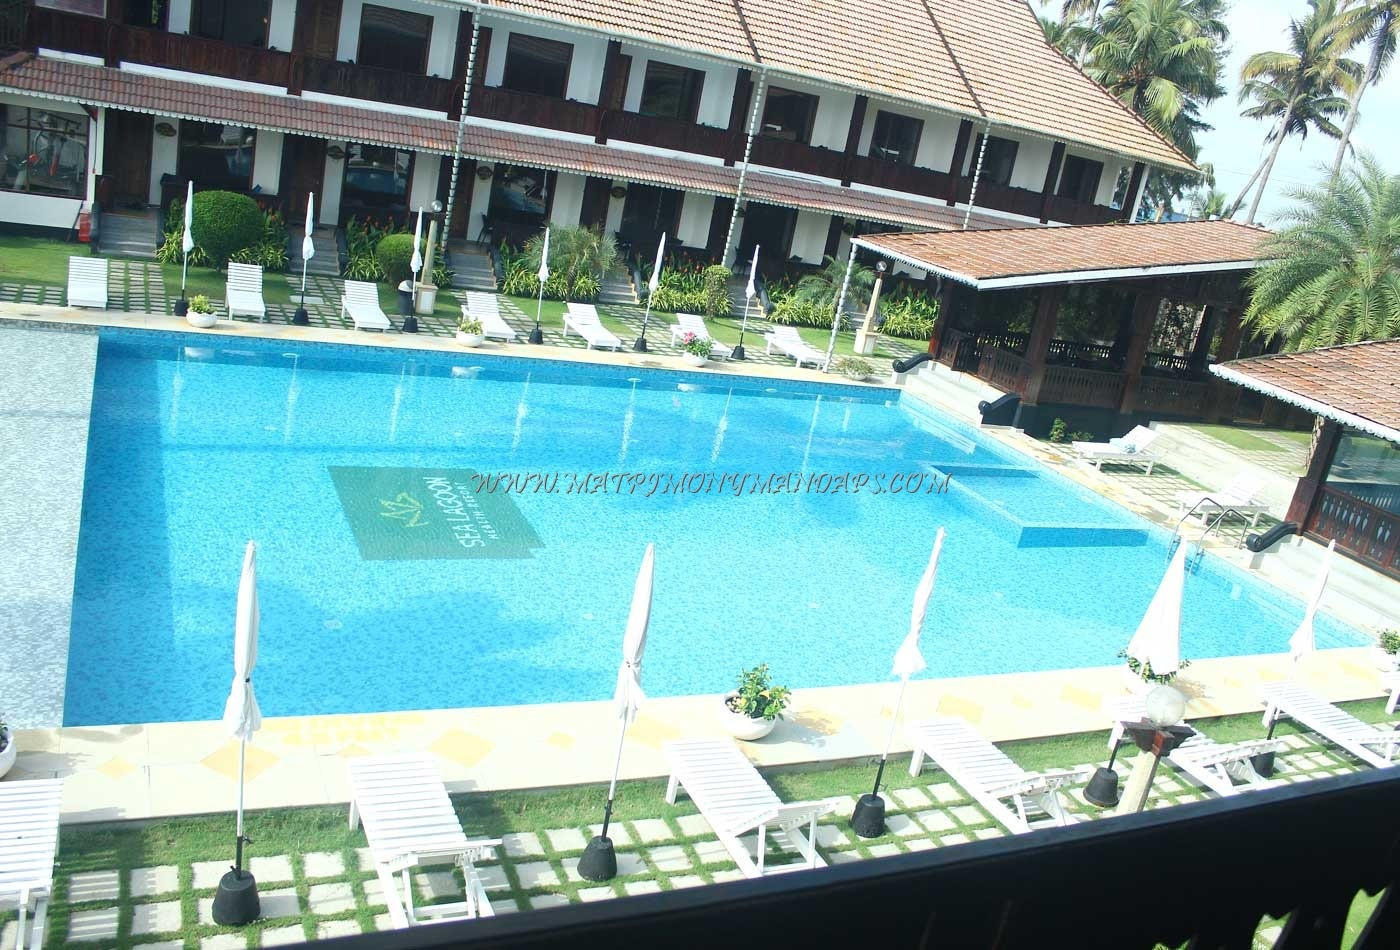 Find the availability of the Sea Lagoon Health Resort - Sarangi Hall (A/C) in Cherai, Kochi and avail special offers